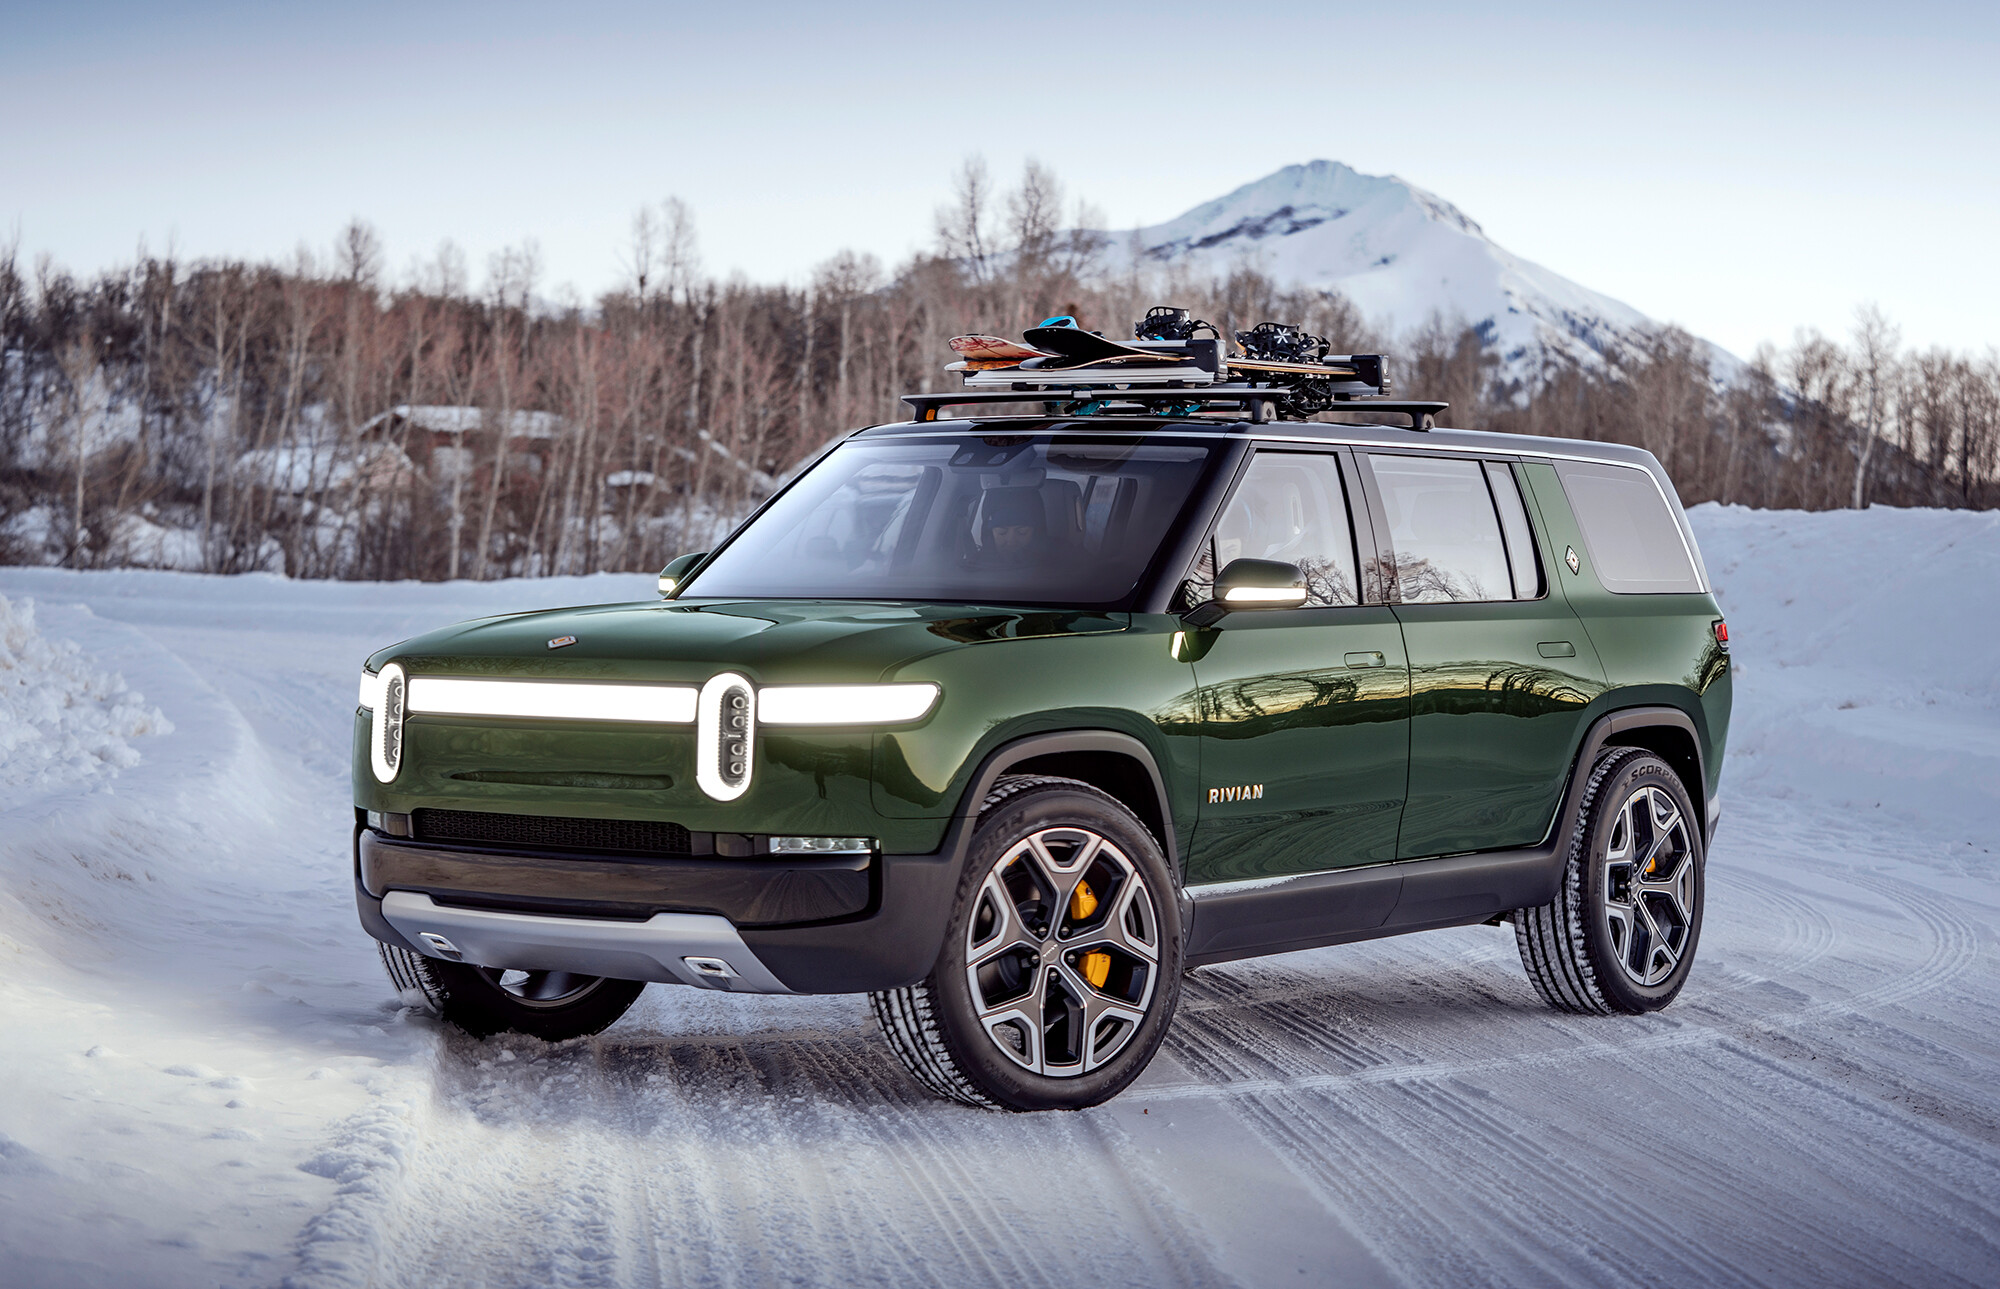 Rivian files to go public with IPO, reportedly seeking valuation up to $80 billion